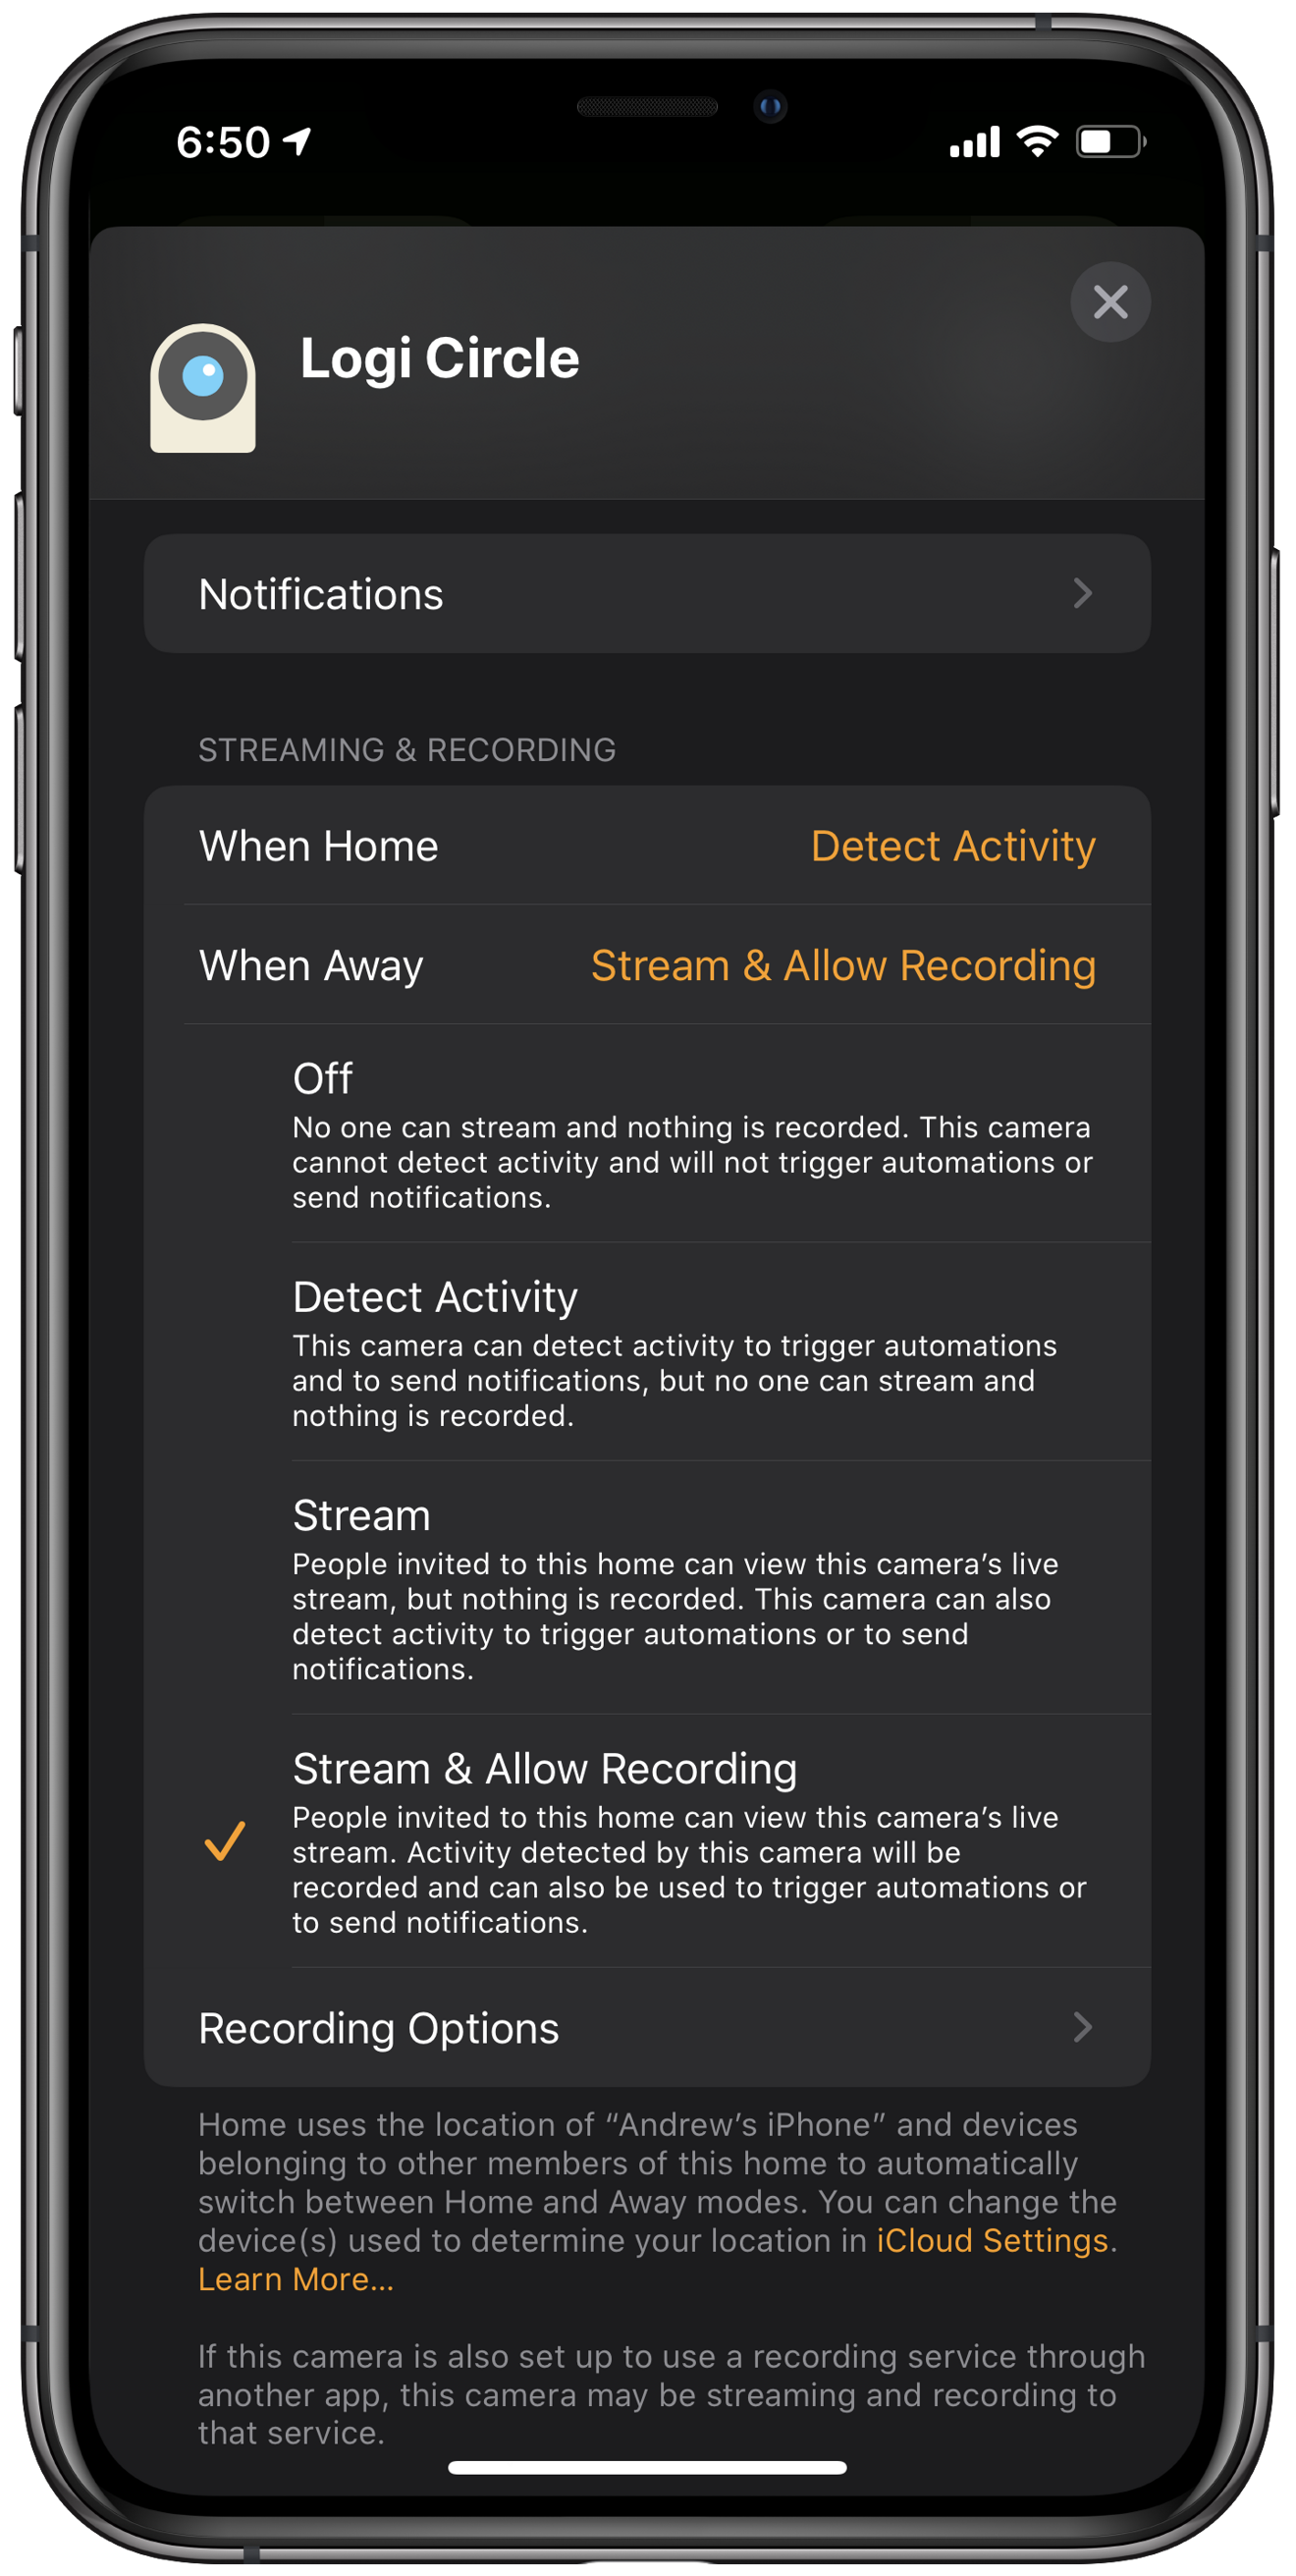 Choose streaming and recording options for when users are home and while users are away.